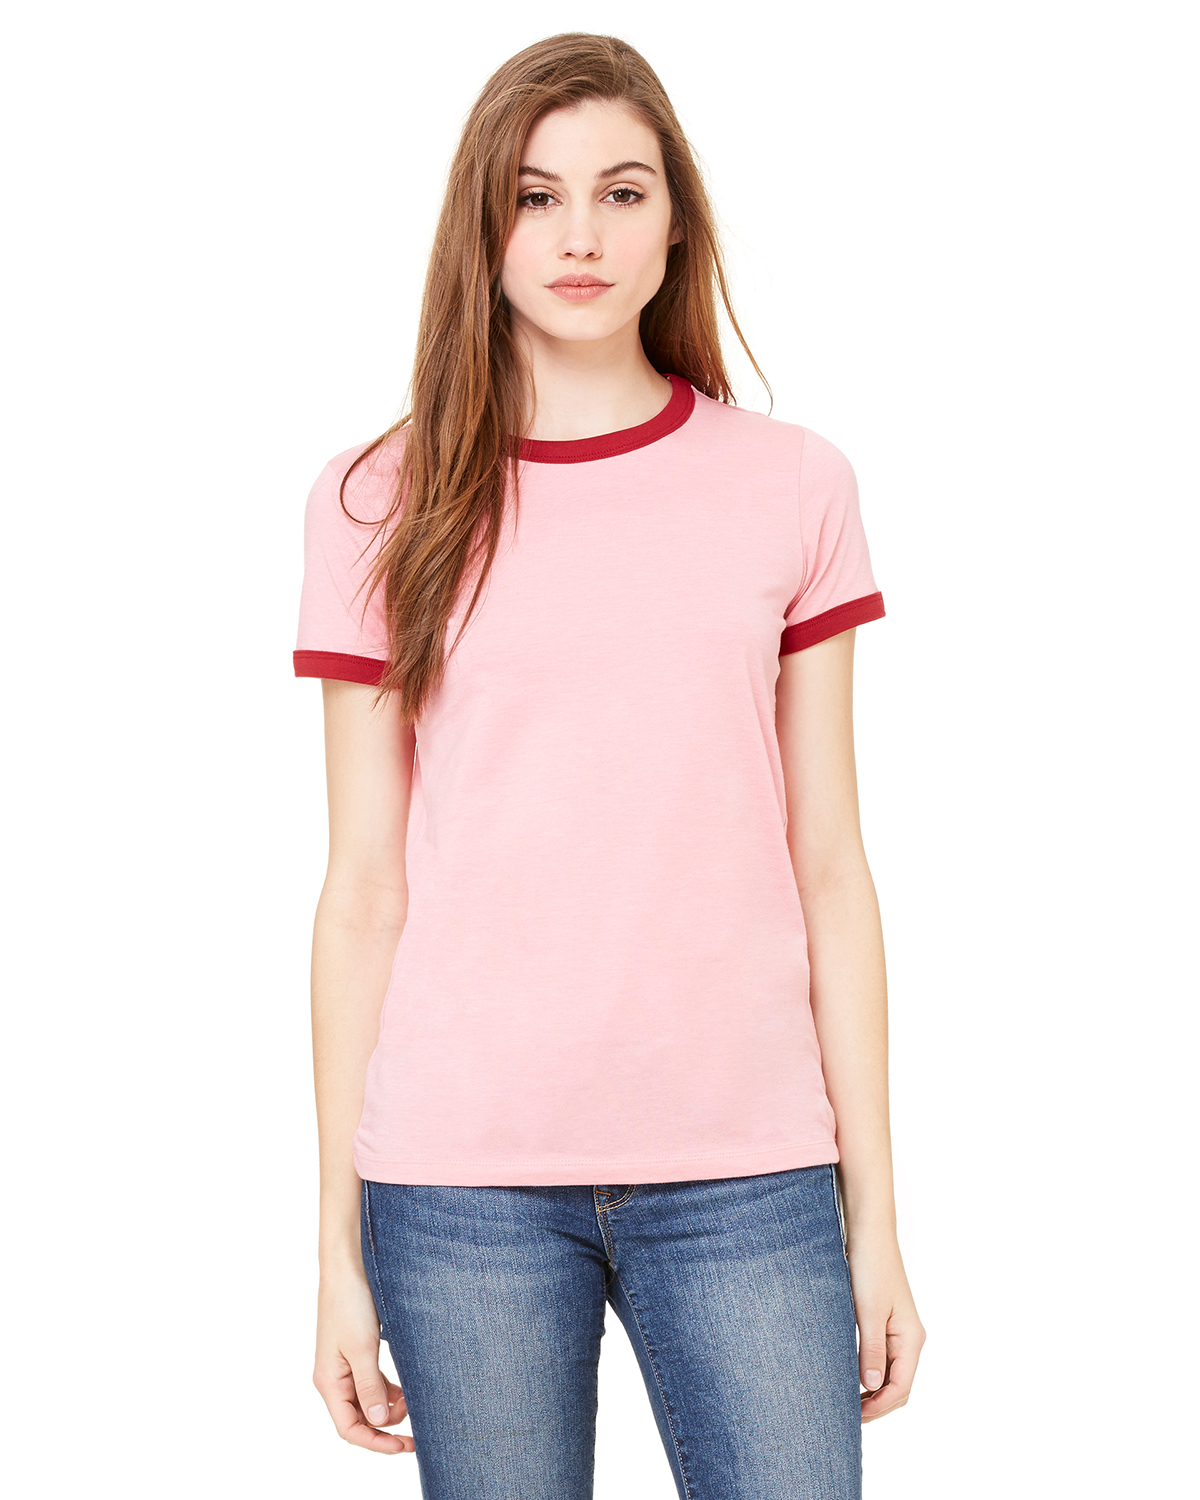 bella 6050 Ladies' Short Sleeve Heather Ringer T-Shirt